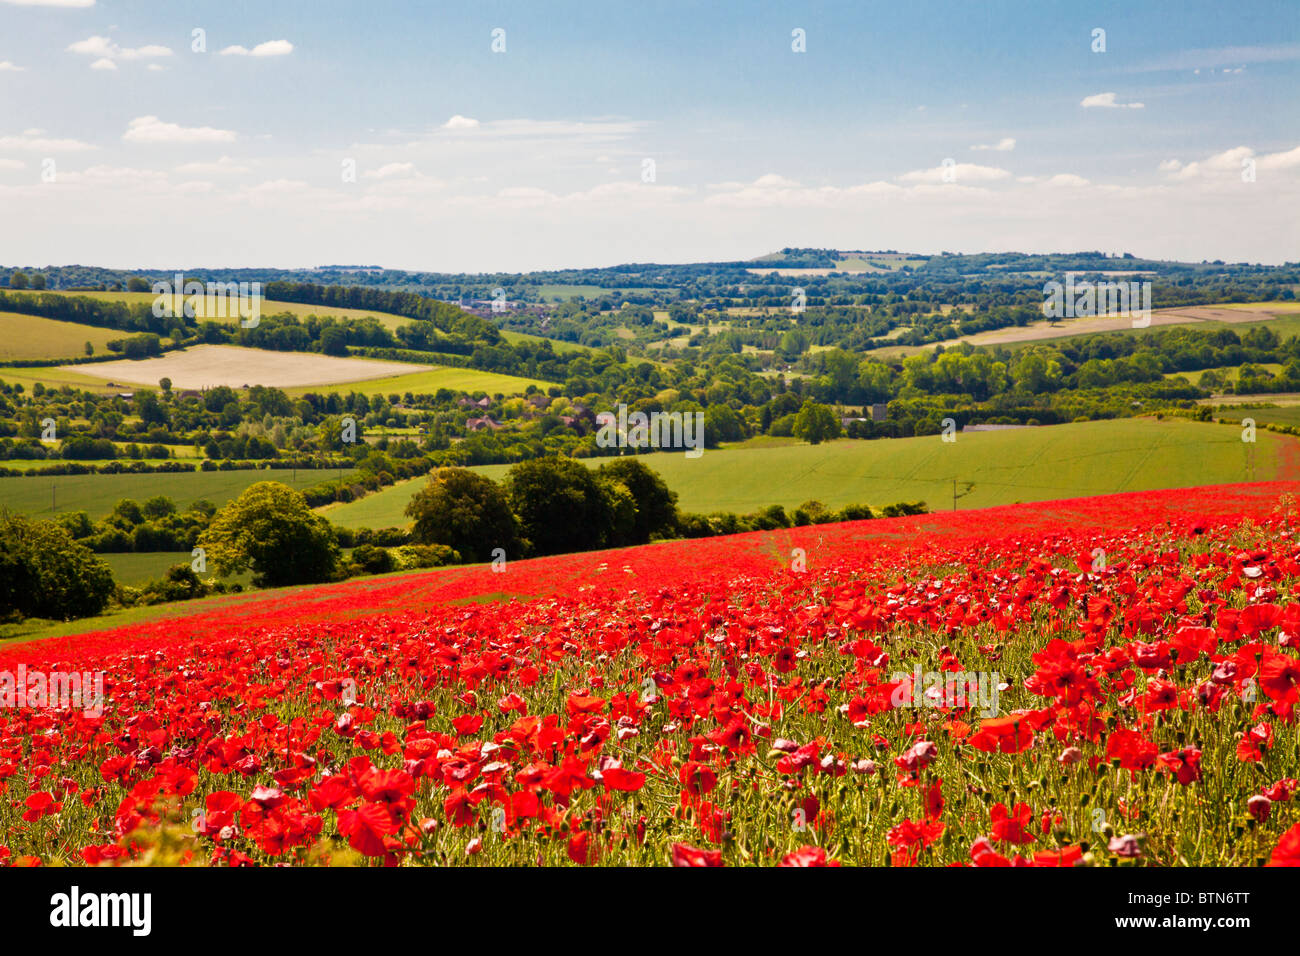 Poppy fields in sunshine on the Marlborough Downs, Wiltshire, England, UK - Stock Image